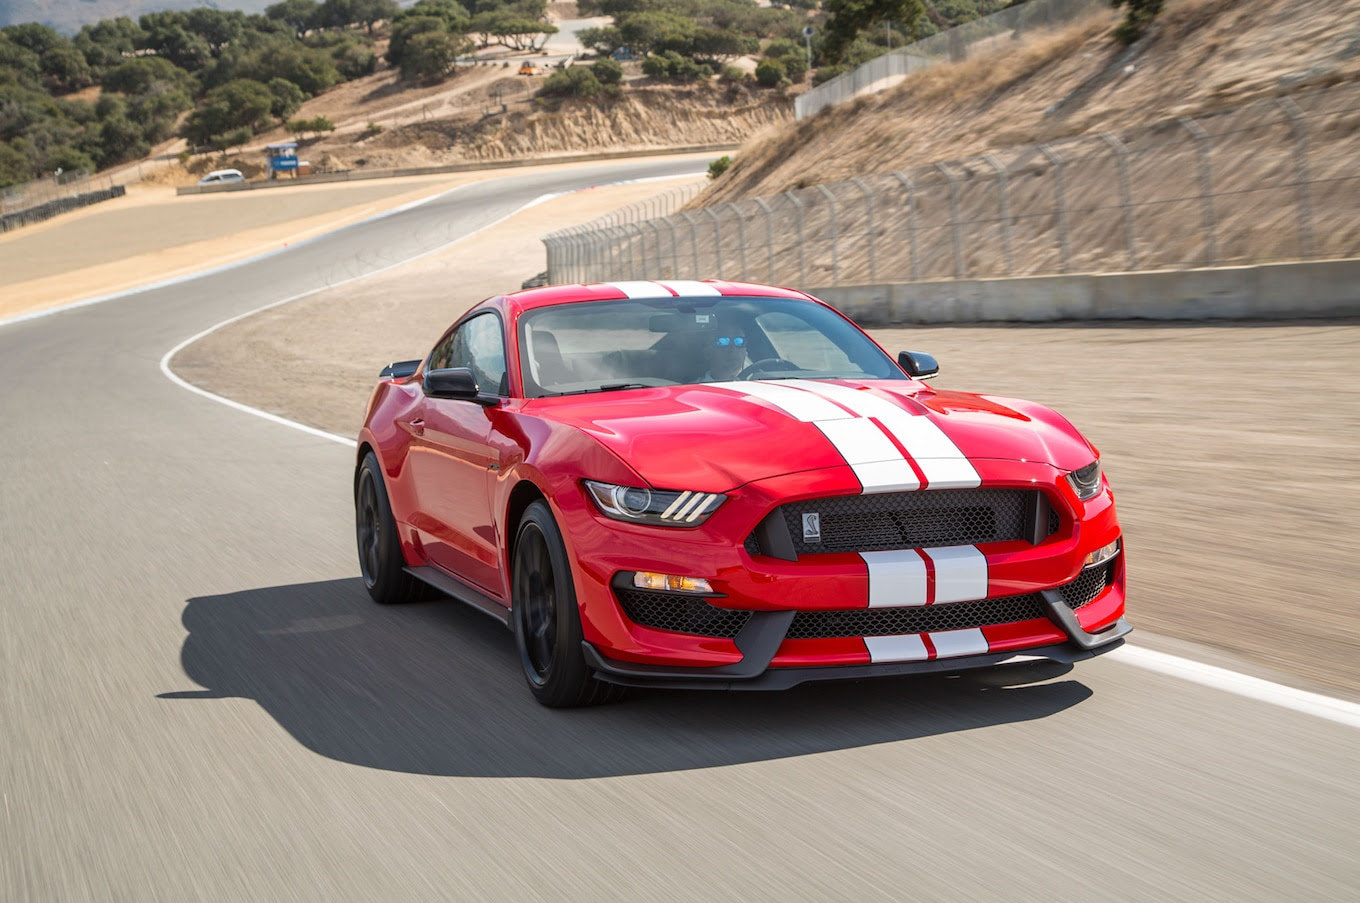 2016 Ford Shelby GT350R Mustang Review - First Drive ...